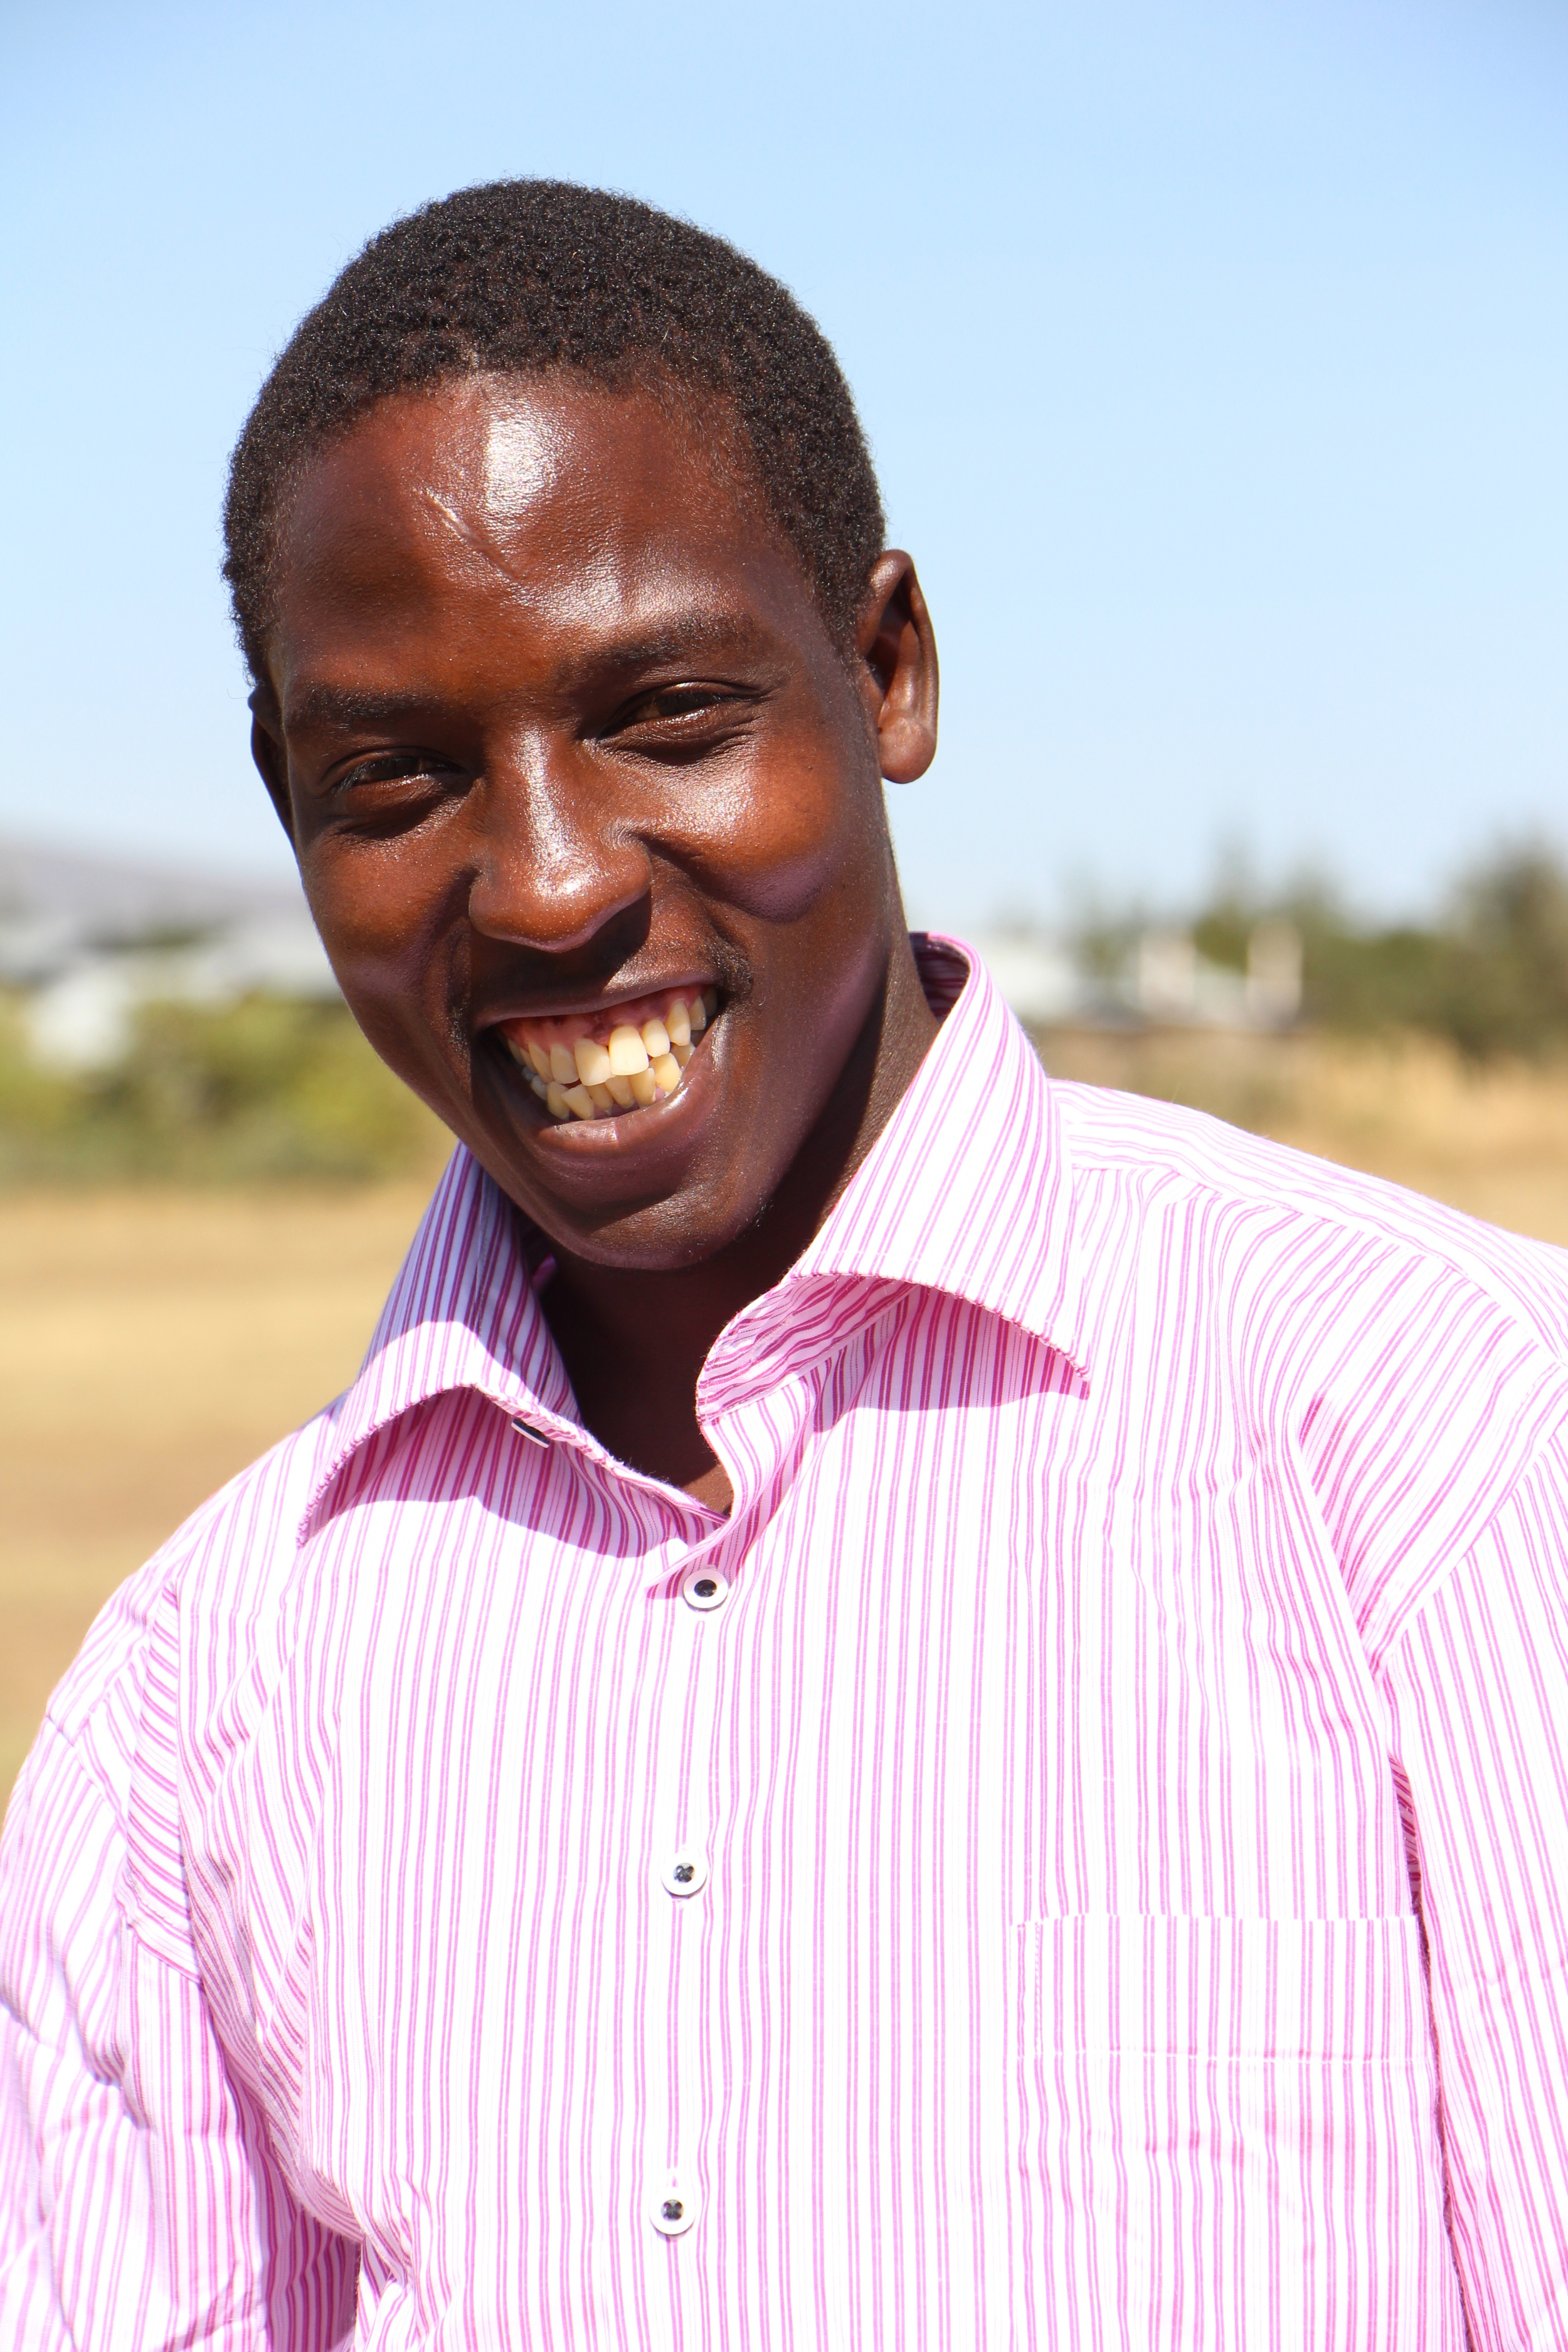 Douglas Karanja, IT Center Manager & Facilitator